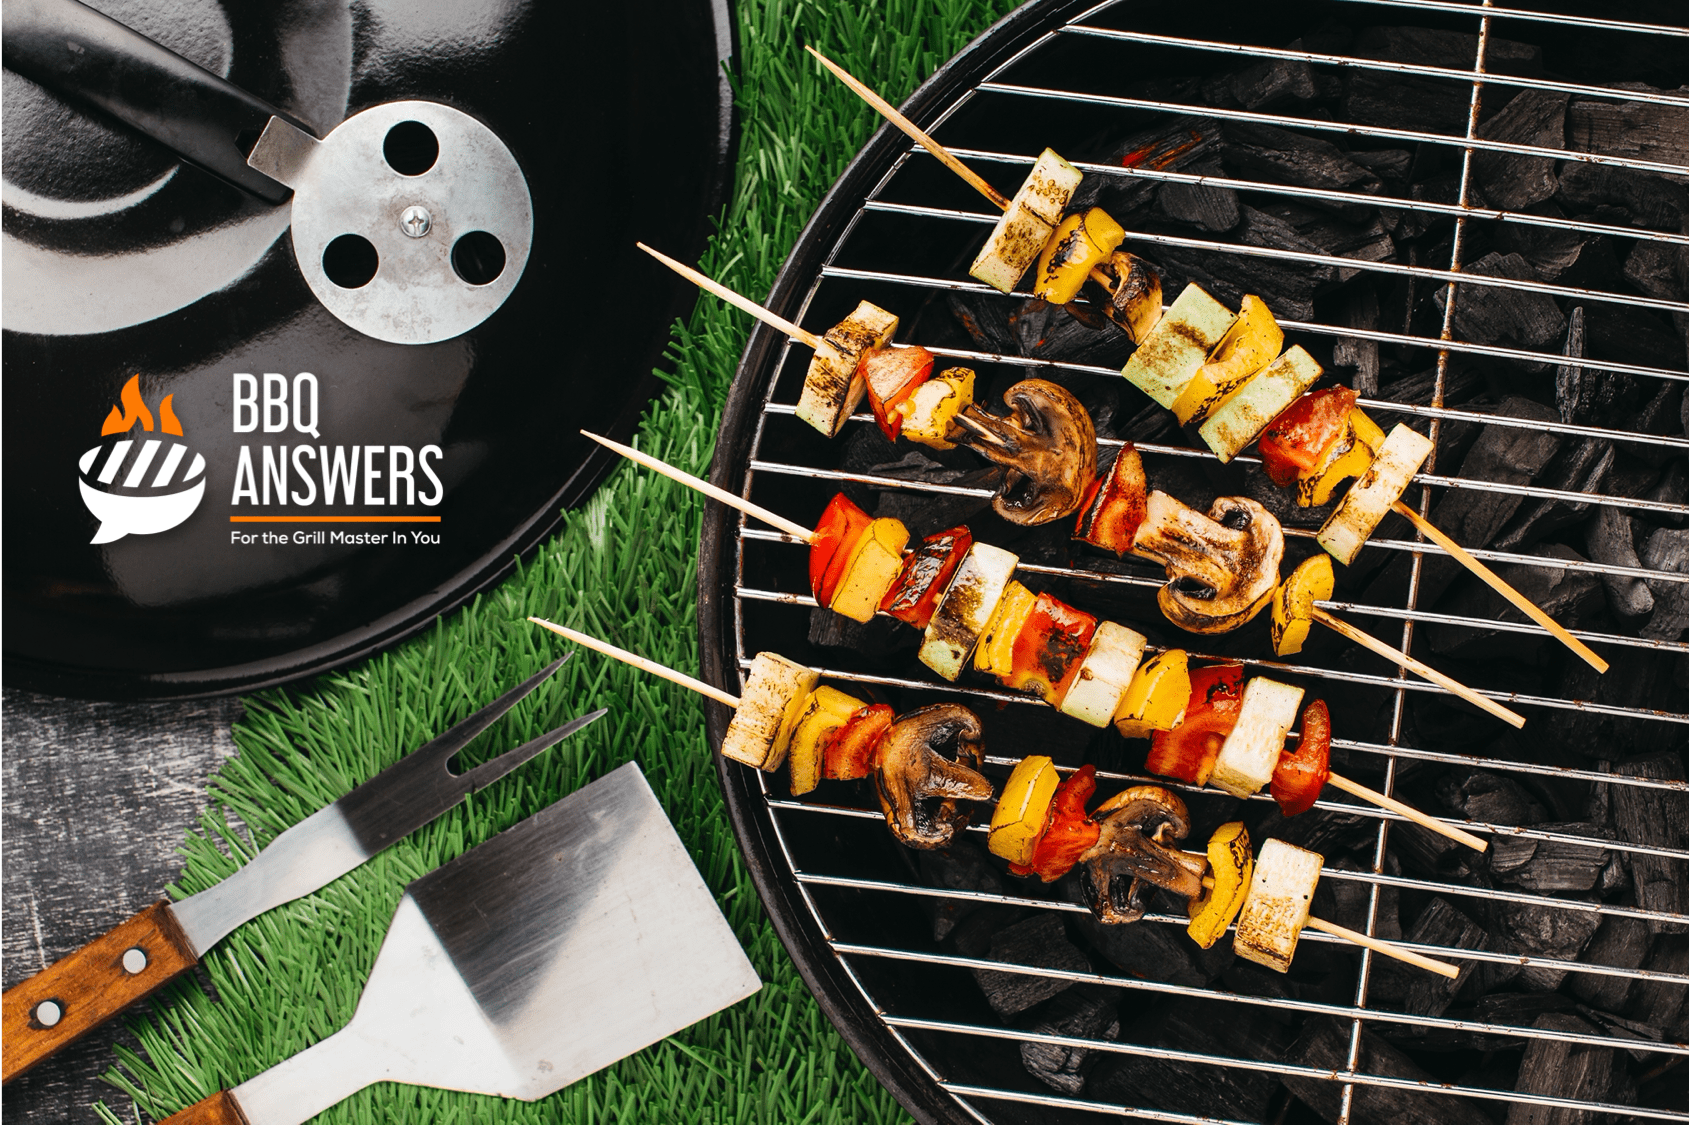 Buyer's Guide for Charcoal Grills | BBQanswers